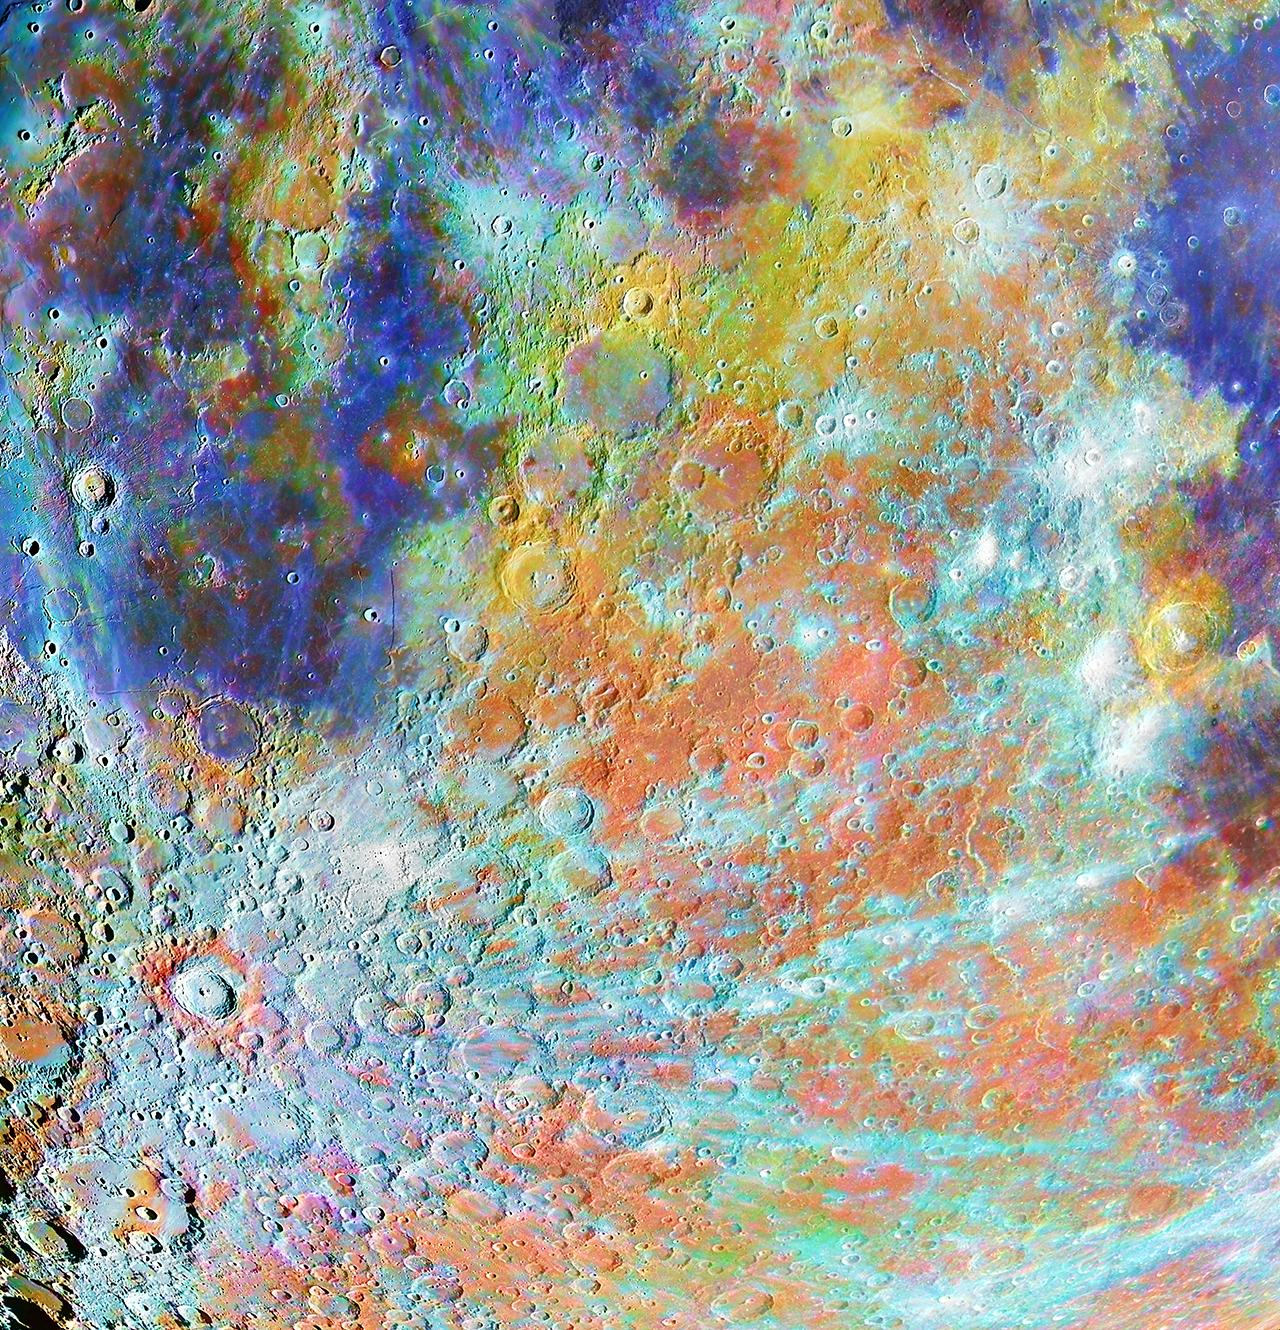 An image showing 'Tycho Crater Region with Colours'